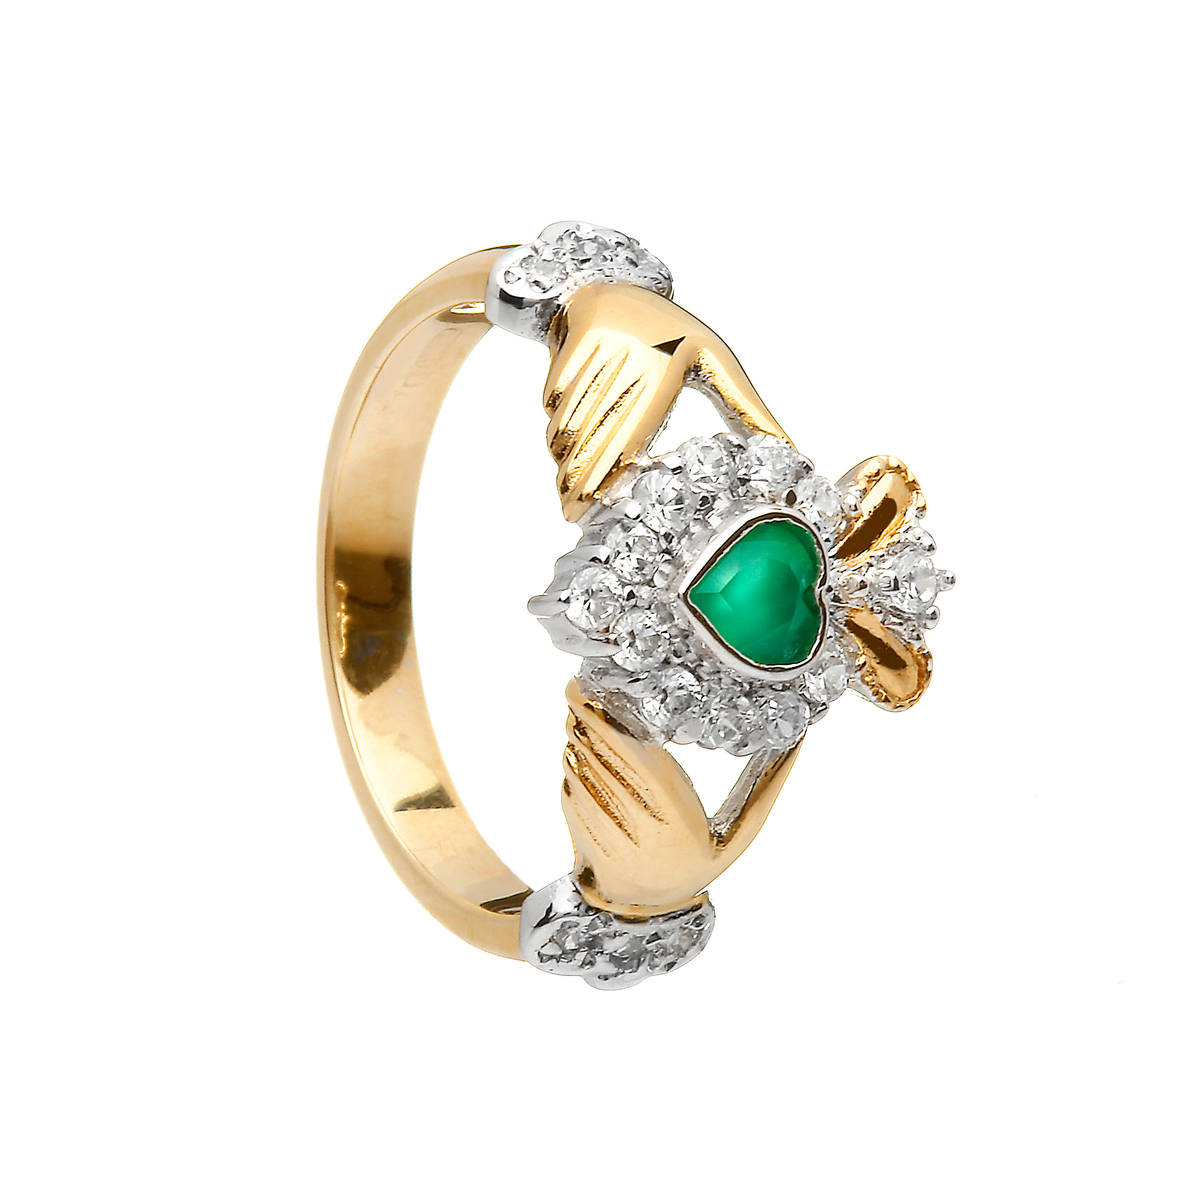 10 carat Yellow Gold Green Agate Claddagh Ring With Cubic Zirconia Stones